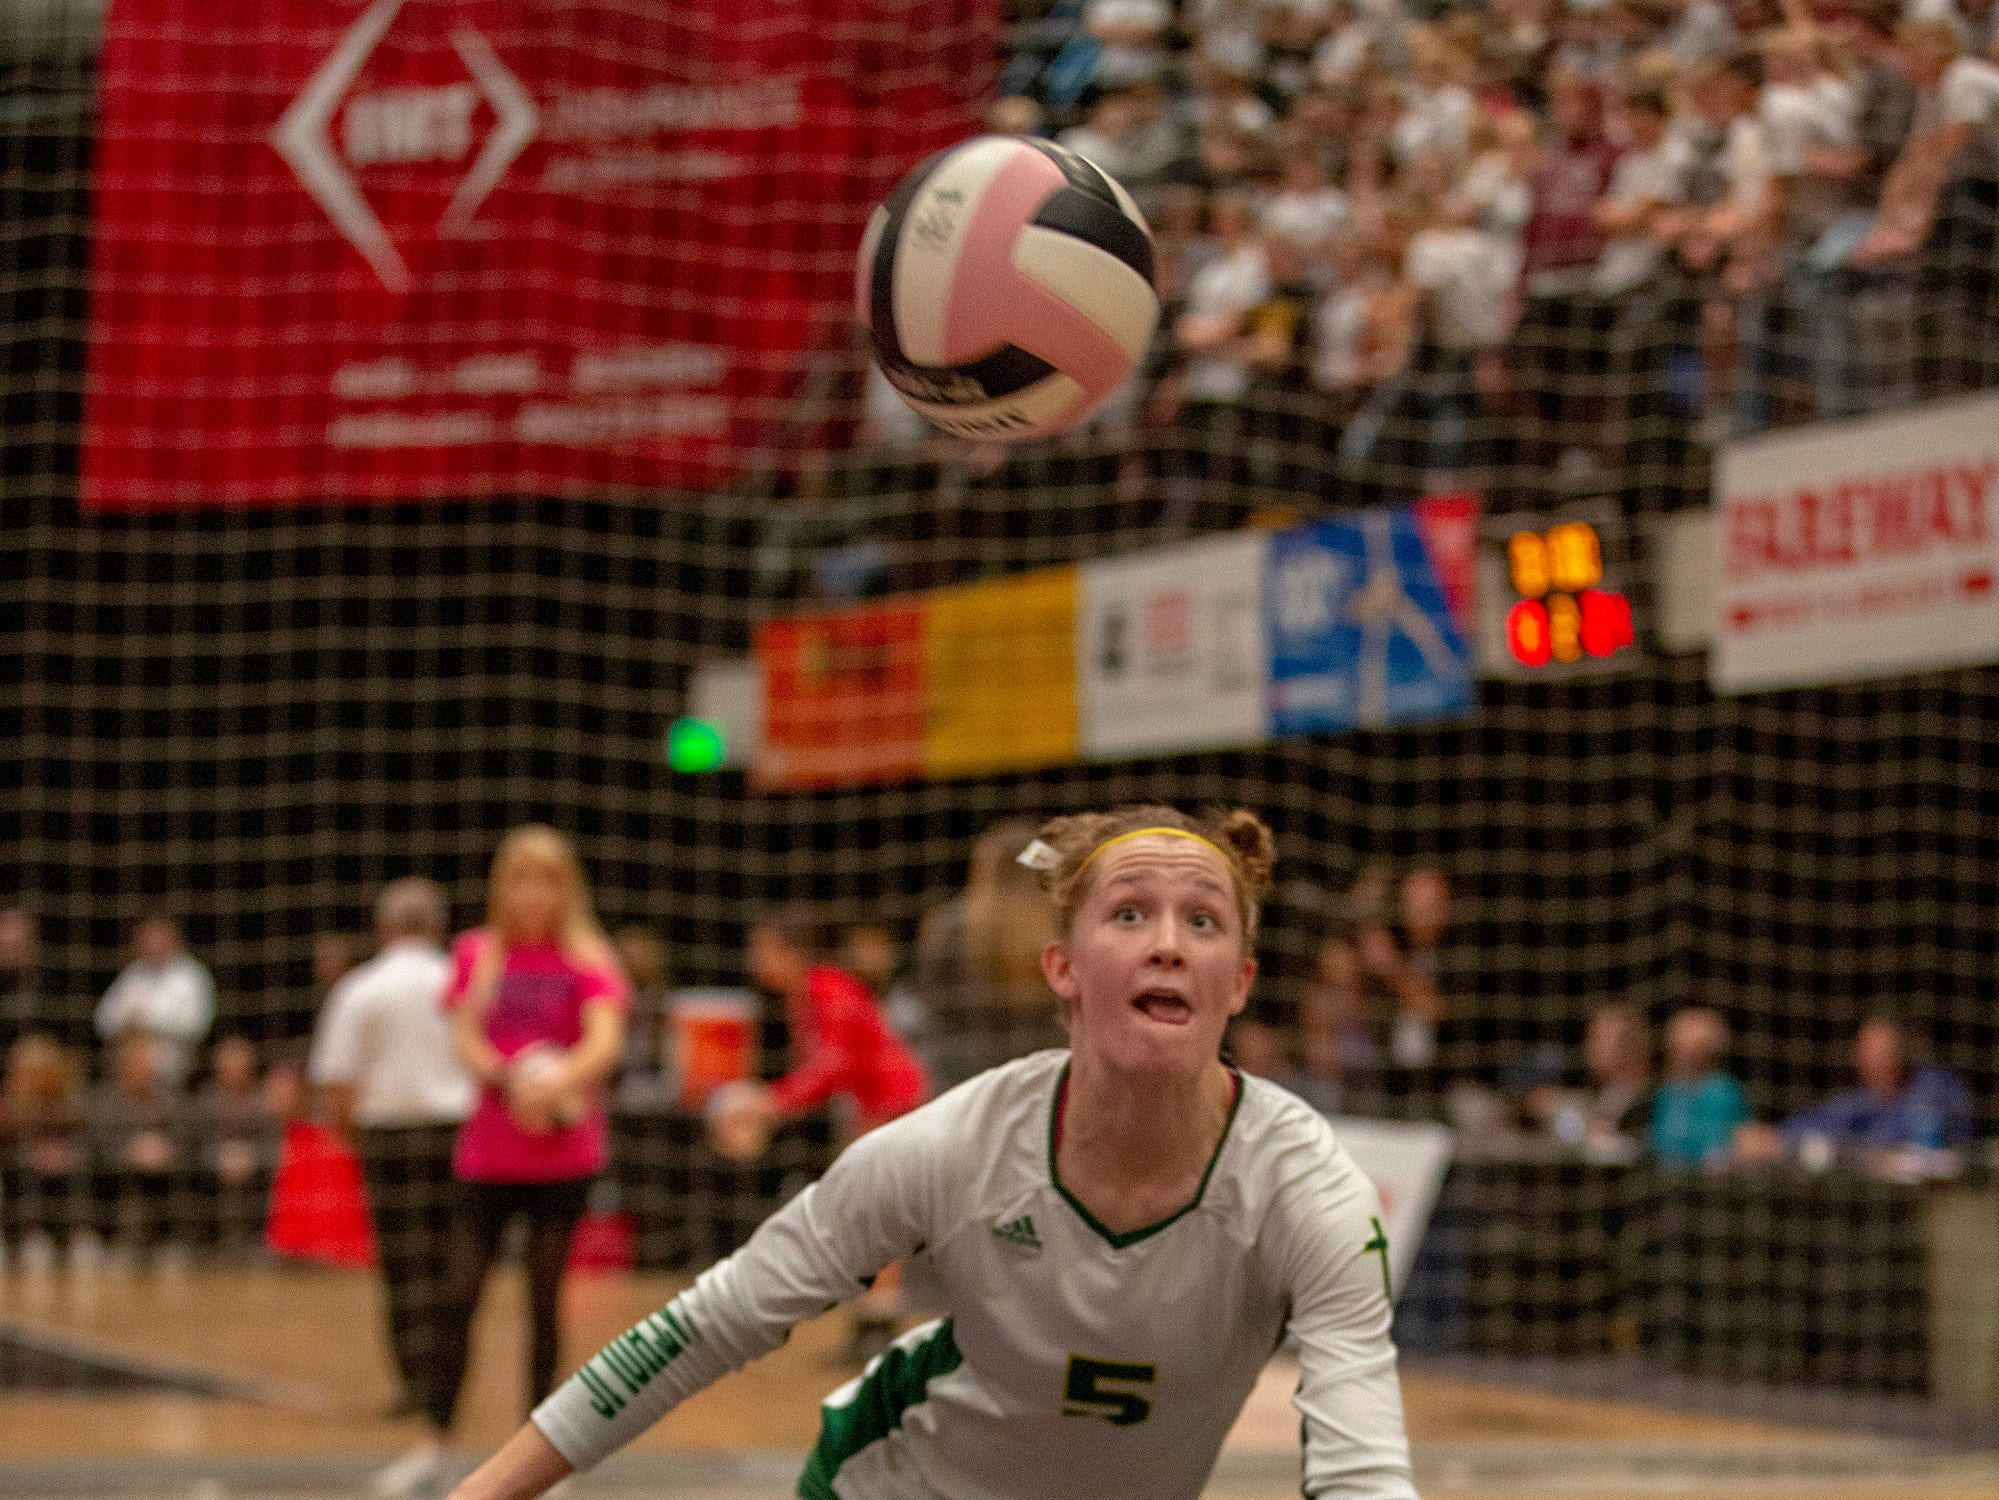 Heather Boeckenstadt of Beckman dives for the ball during quarterfinal action at the Iowa girls state volleyball tournament in Cedar Rapids.